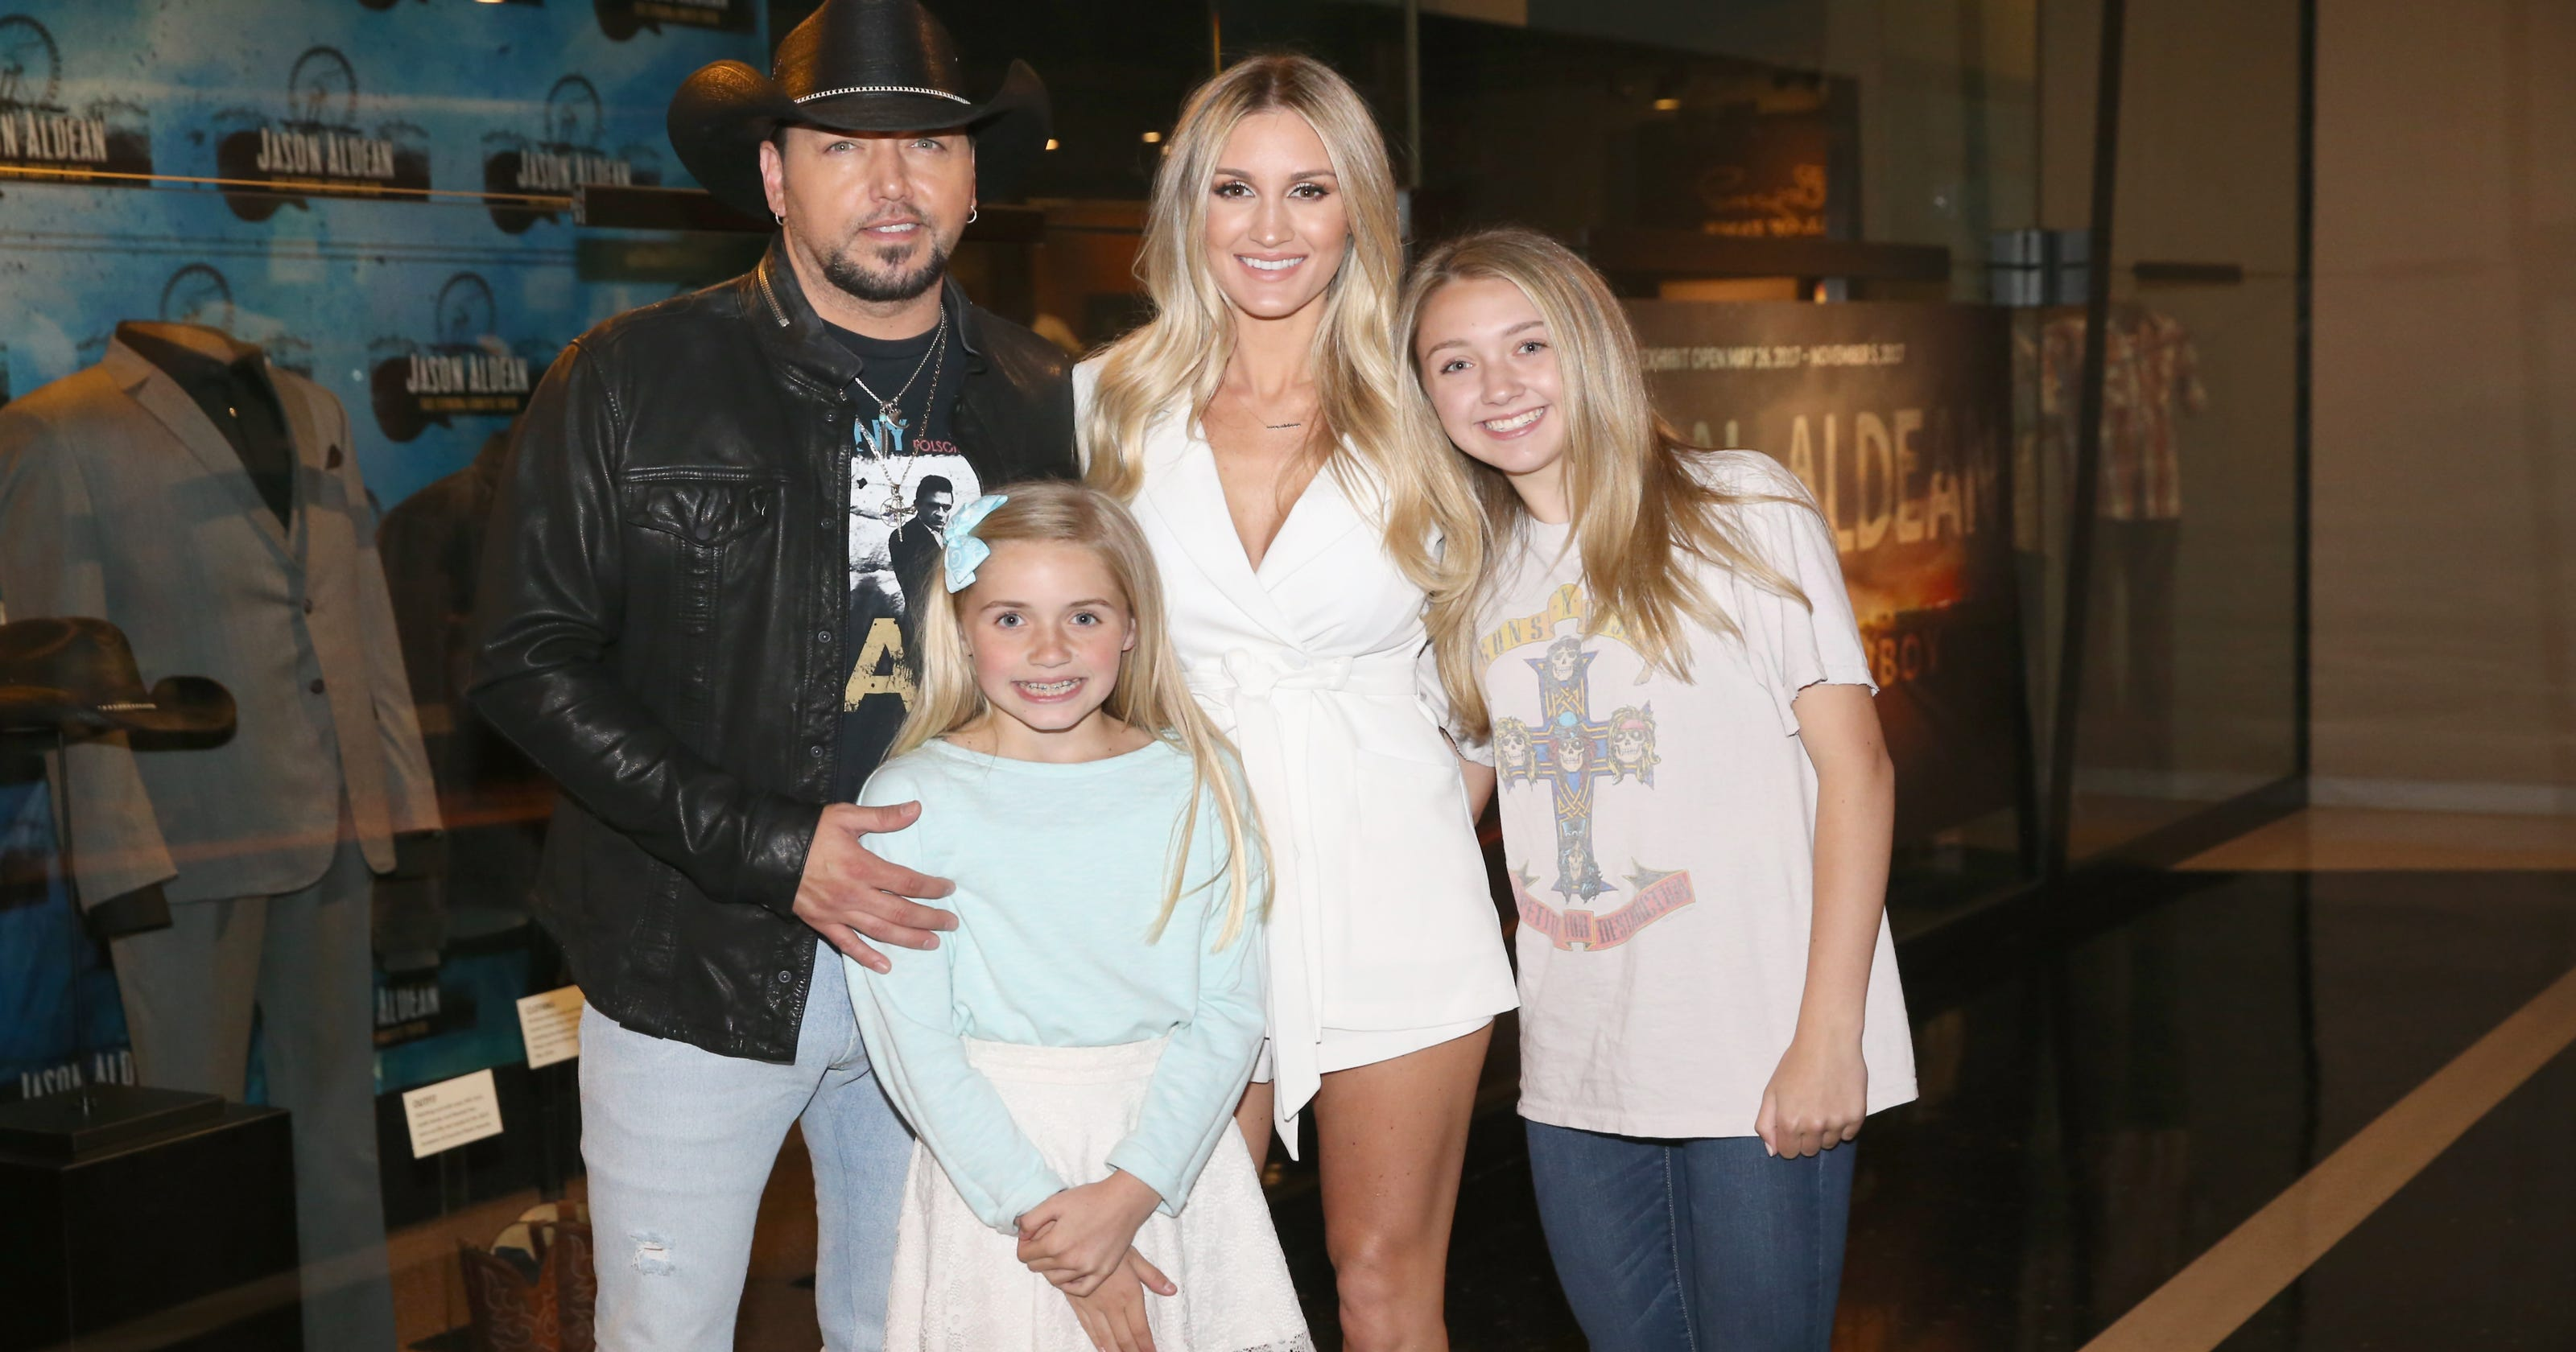 Jason Aldean Hopes His Country Music Hall Of Fame Exhibit Is